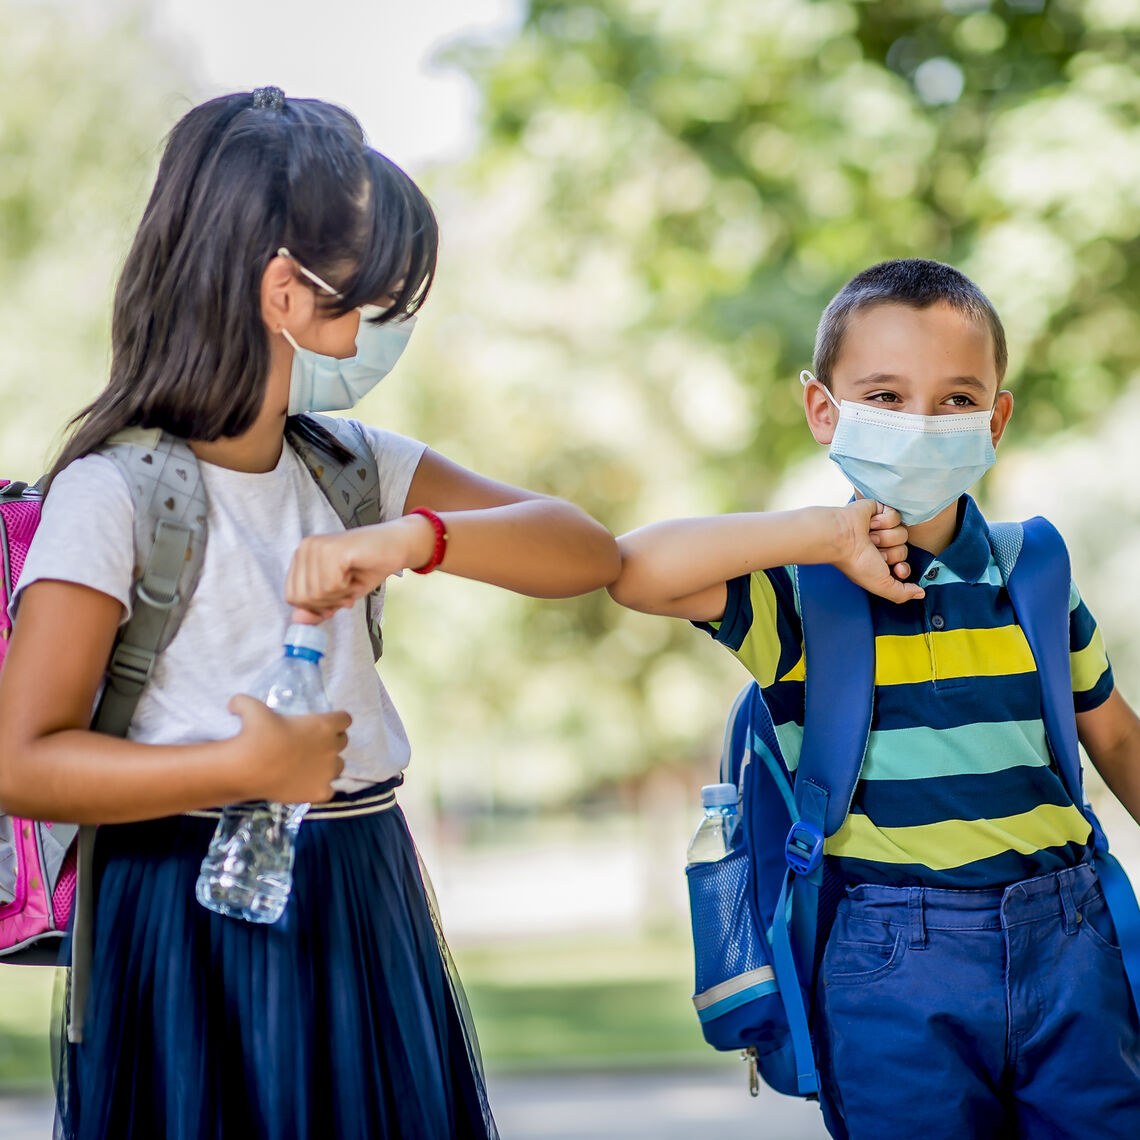 A young boy and girl wearing masks, bumping elbows outside with backpacks on